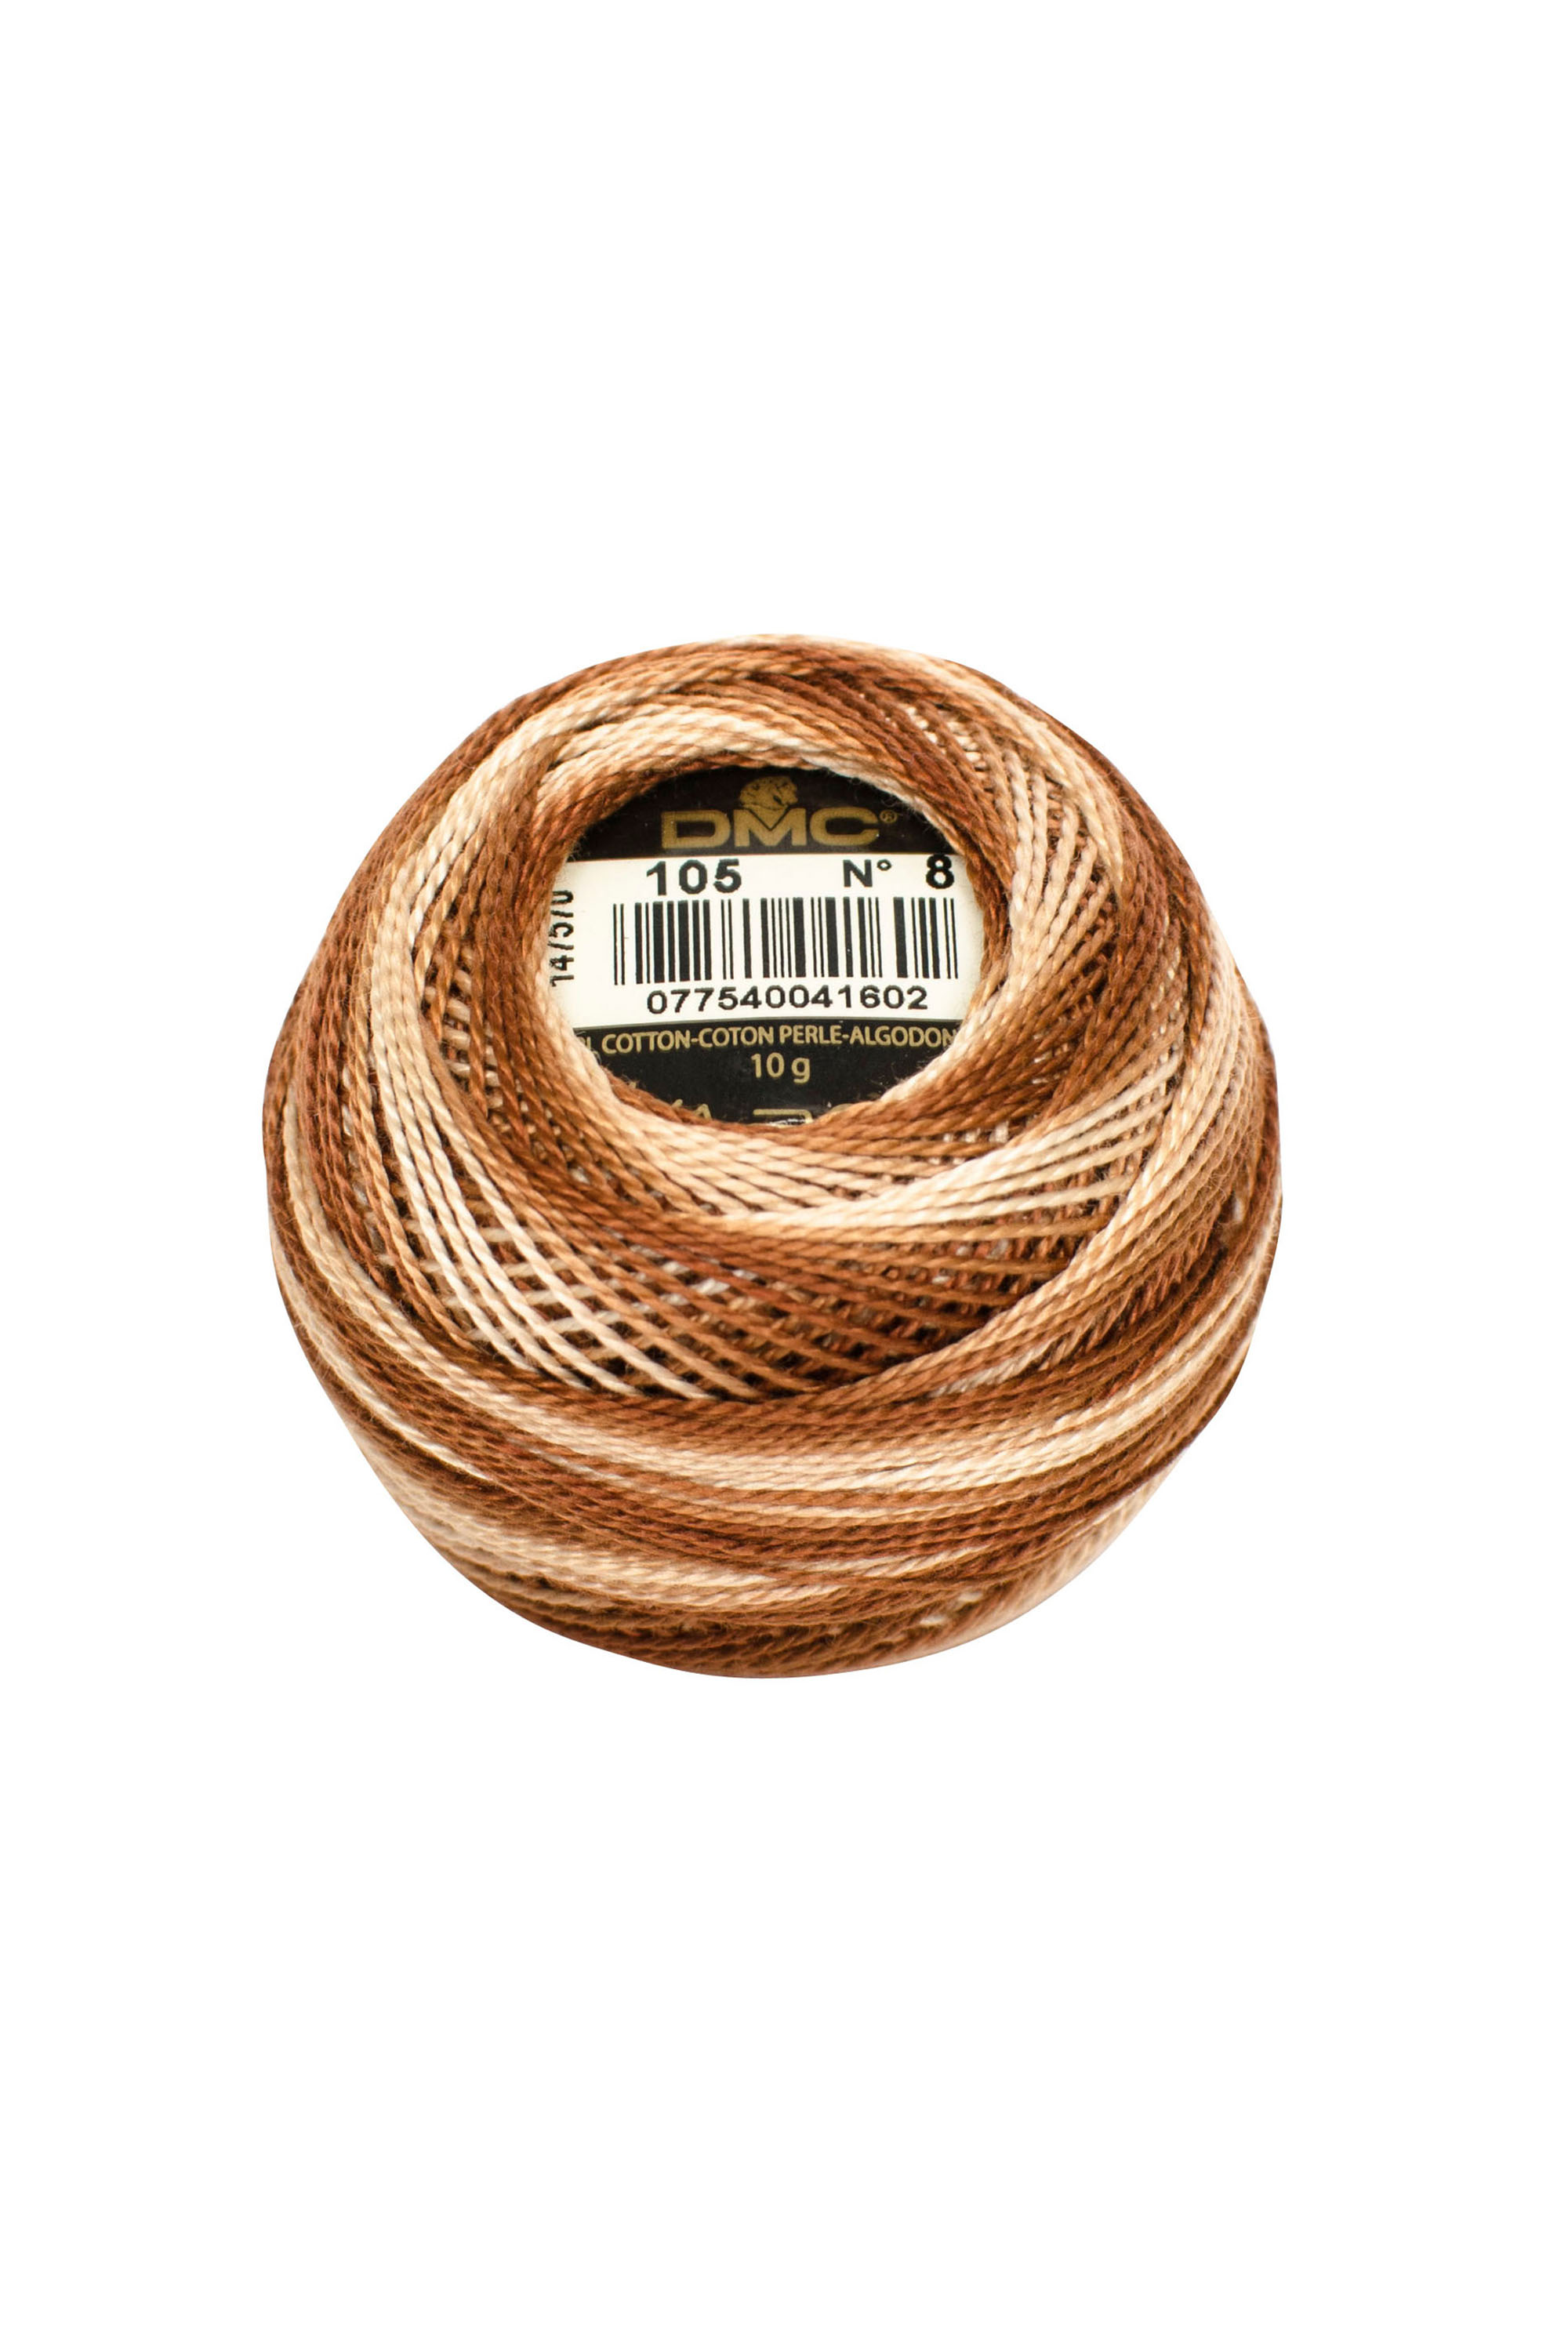 Variegated Brown Perle 8 Embroidery Thread DMC8-105 - Colour Mix Pearl Cotton